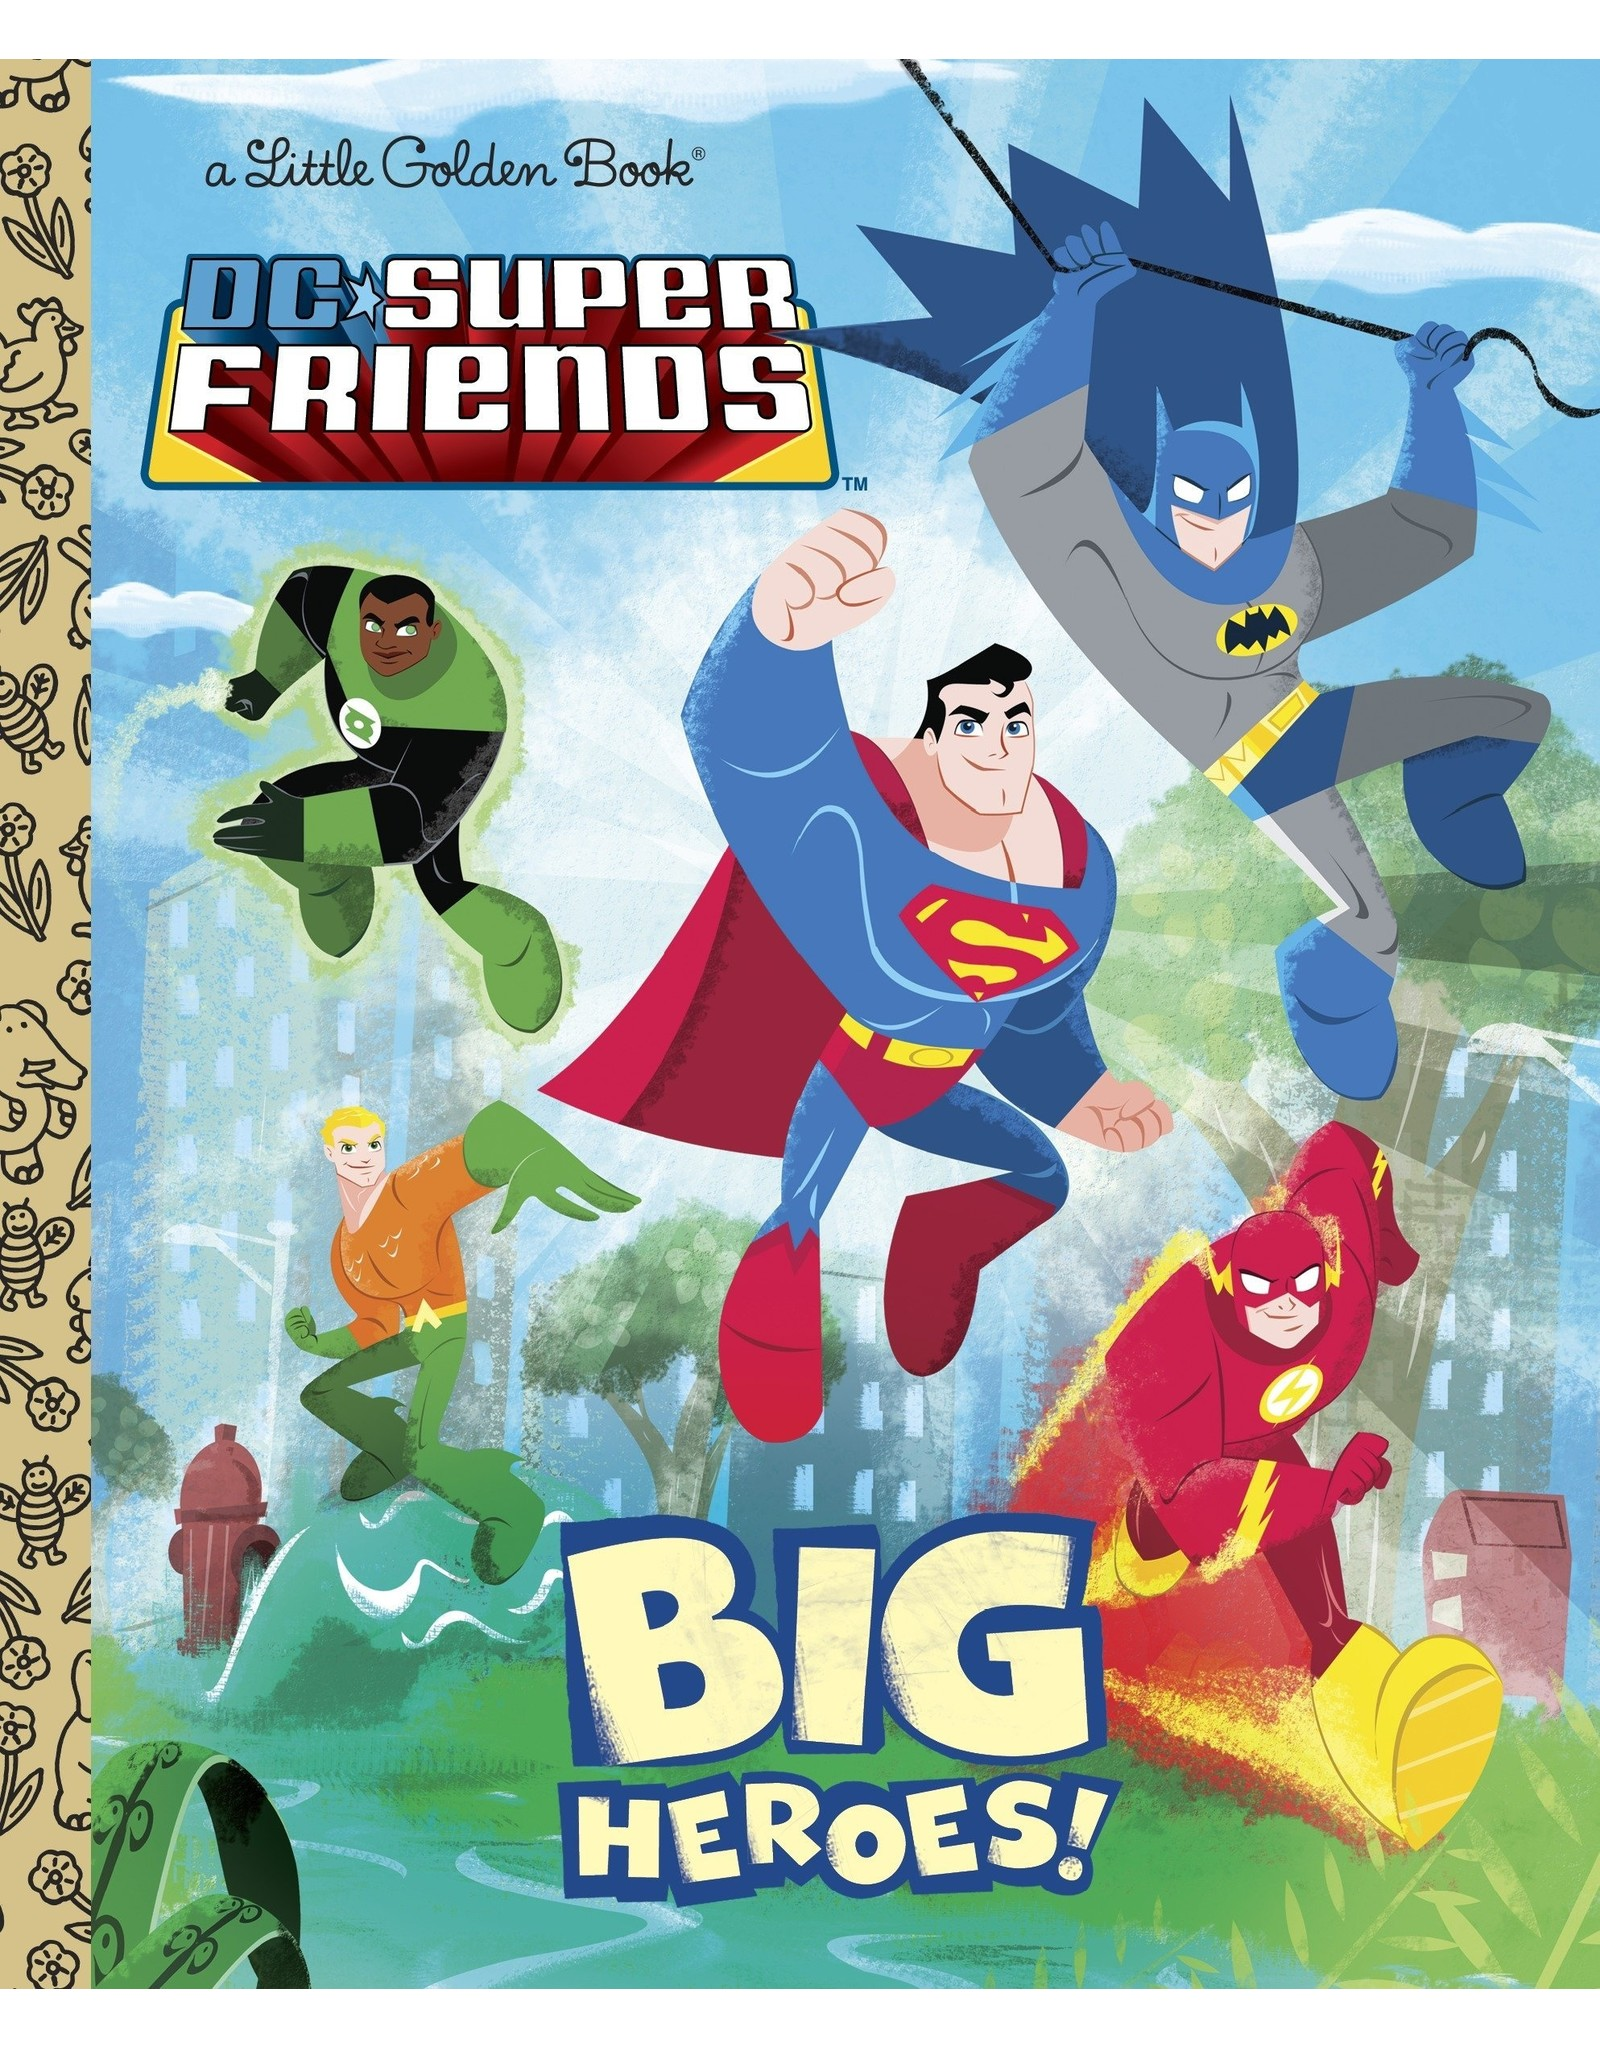 DC SUPER FRIENDS BIG HEROES! LITTLE GOLDEN BOOK